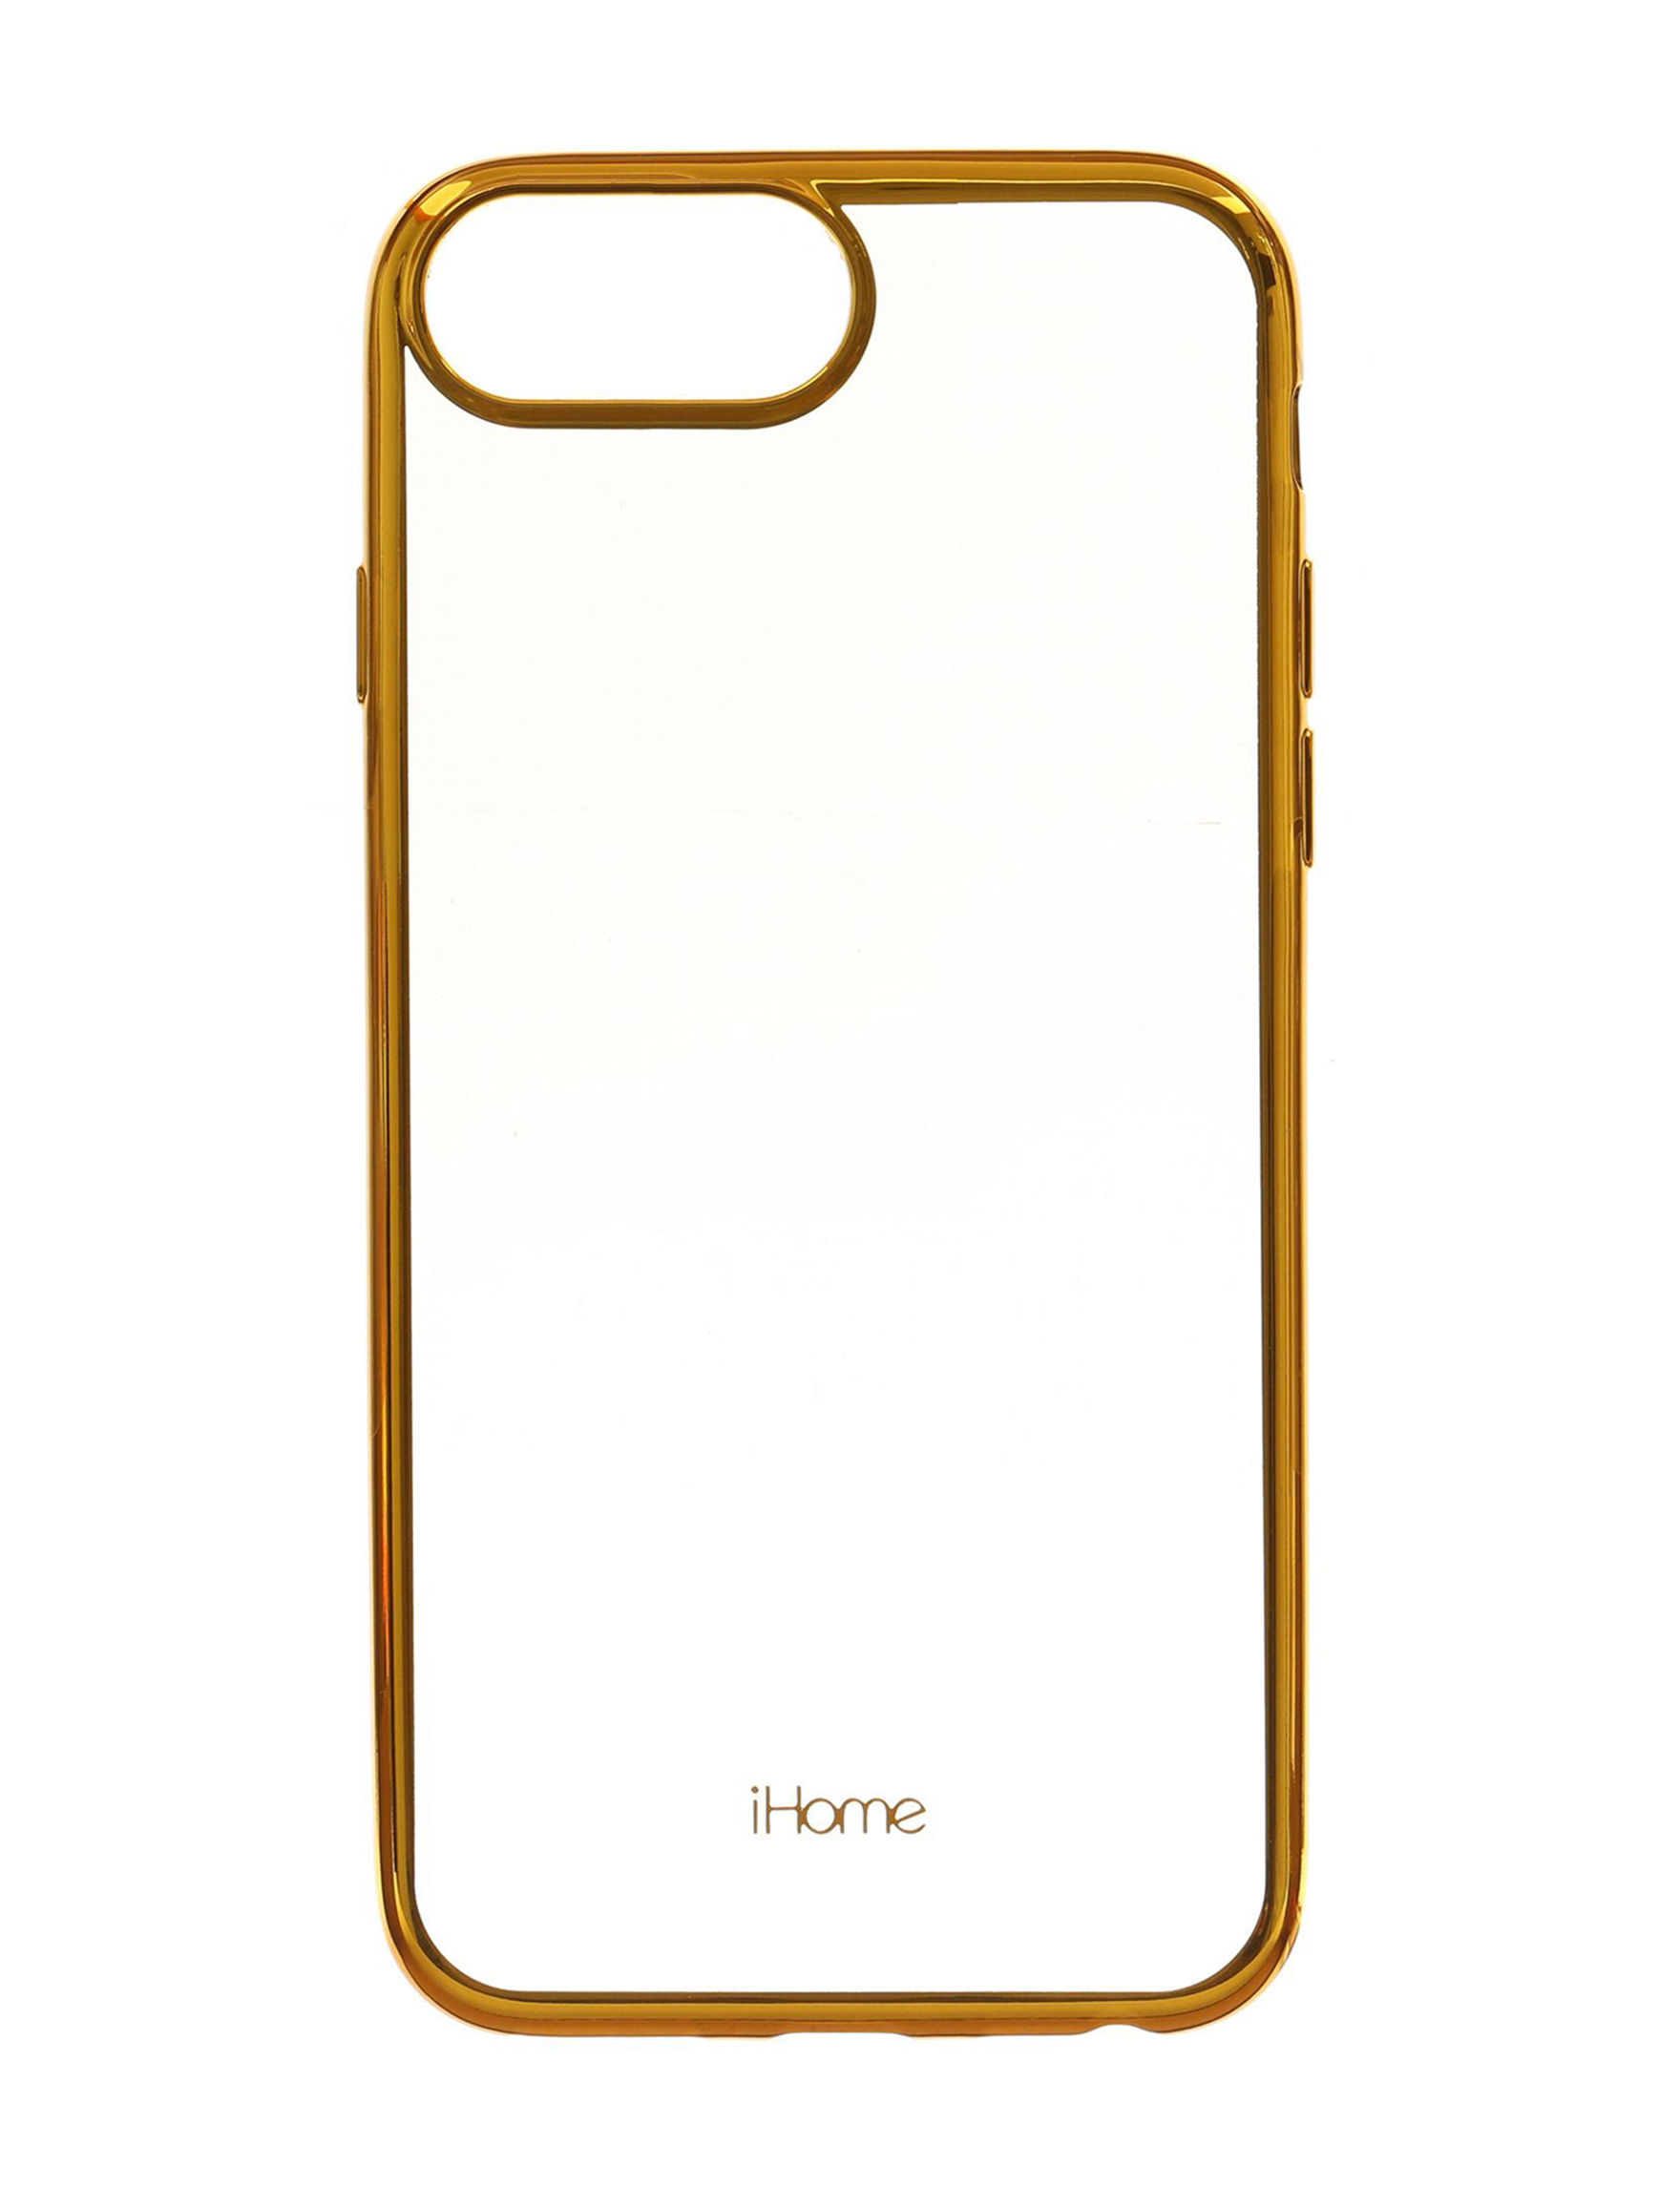 iHome Yellow Cases & Covers Tech Accessories